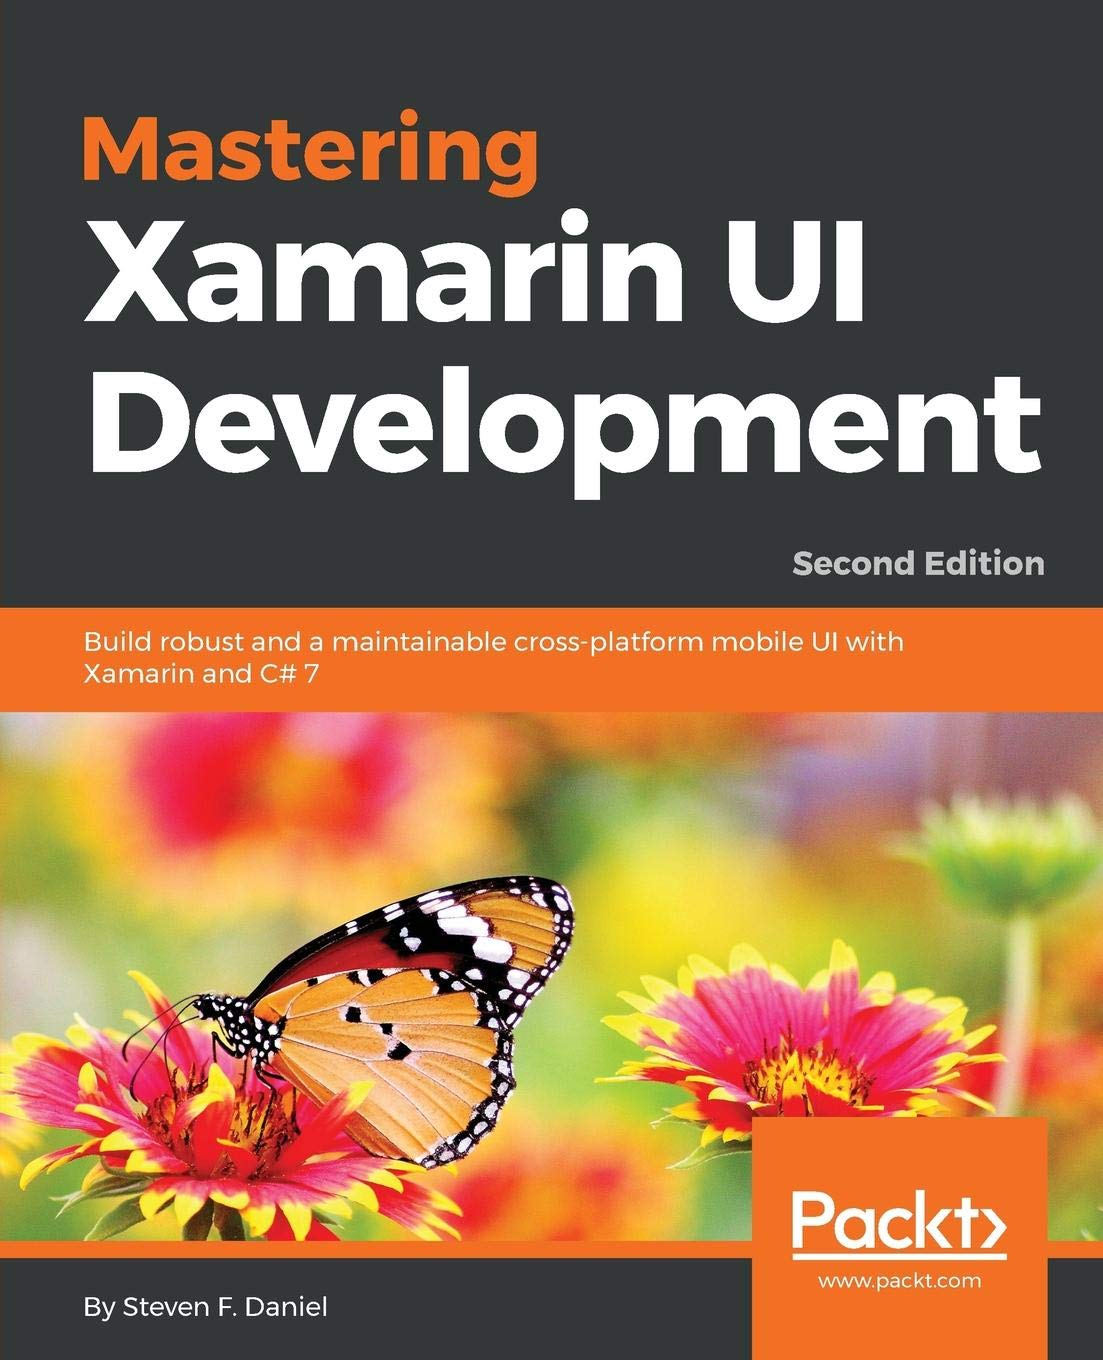 Mastering Xamarin UI Development - Second Edition: Build maintainable, cross platform mobile app UI with the power of Xamarin Paperback – August 31, 2018 Steven F. Daniel 1788995511 Computers/Programming - Games COM051000